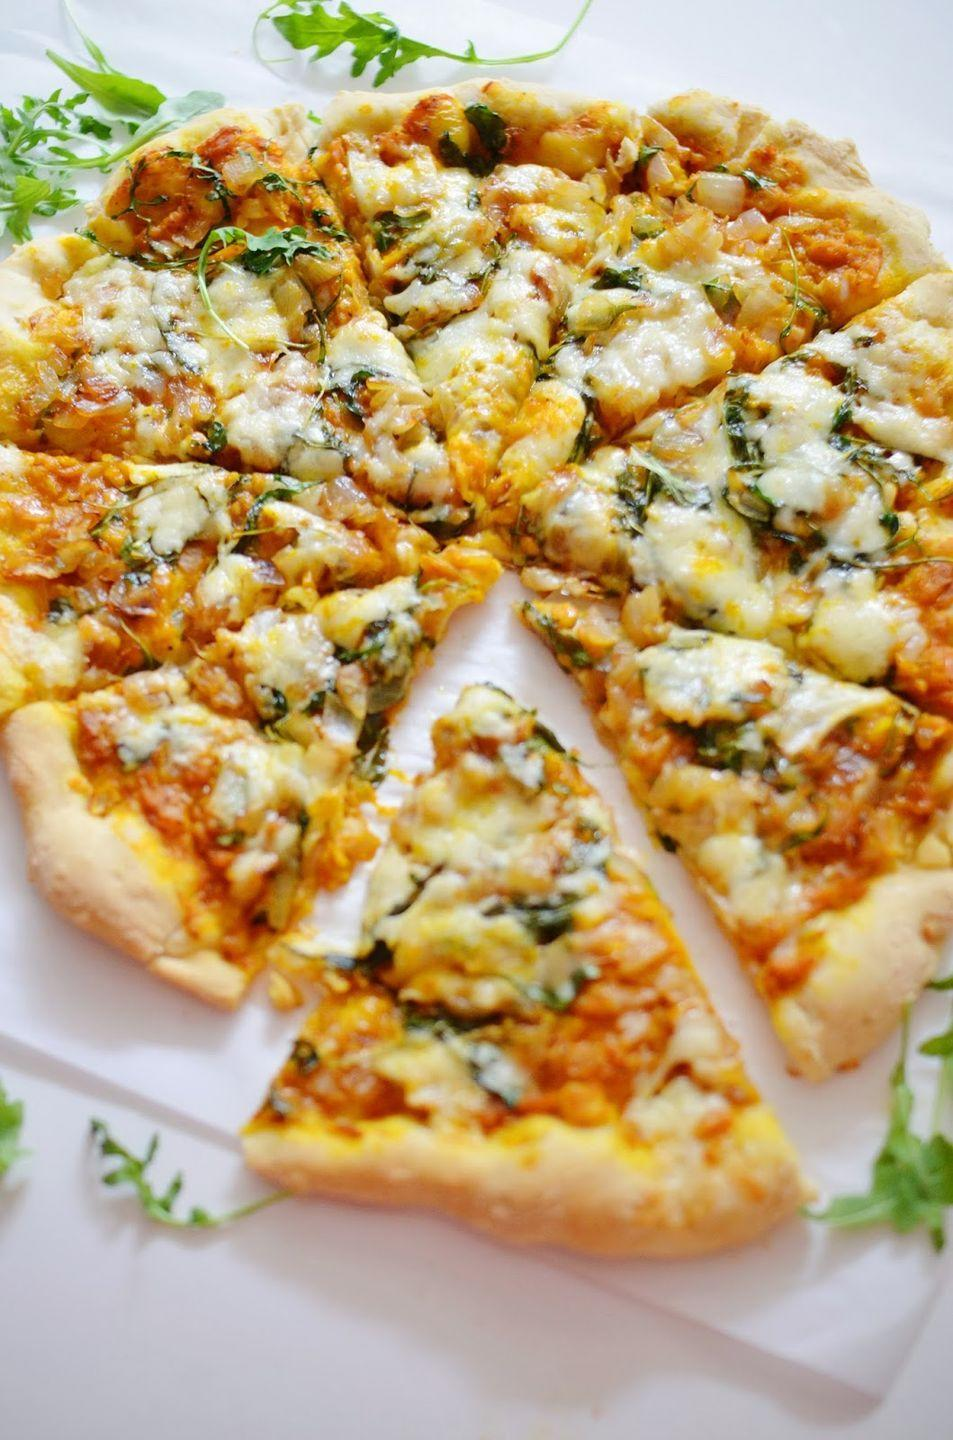 """<p>This blogger claims this is the best pizza you'll ever eat. It's topped with pumpkin puree, sweet onion, garlic, arugula, and parmesan and havarti cheeses. </p><p><strong>Get the recipe at <a href=""""http://lovelolavintage.blogspot.com/2013/11/savory-pumpkin-pizza-aka-best-pizza-you.html"""" rel=""""nofollow noopener"""" target=""""_blank"""" data-ylk=""""slk:Love Lola"""" class=""""link rapid-noclick-resp"""">Love Lola</a>.</strong></p>"""